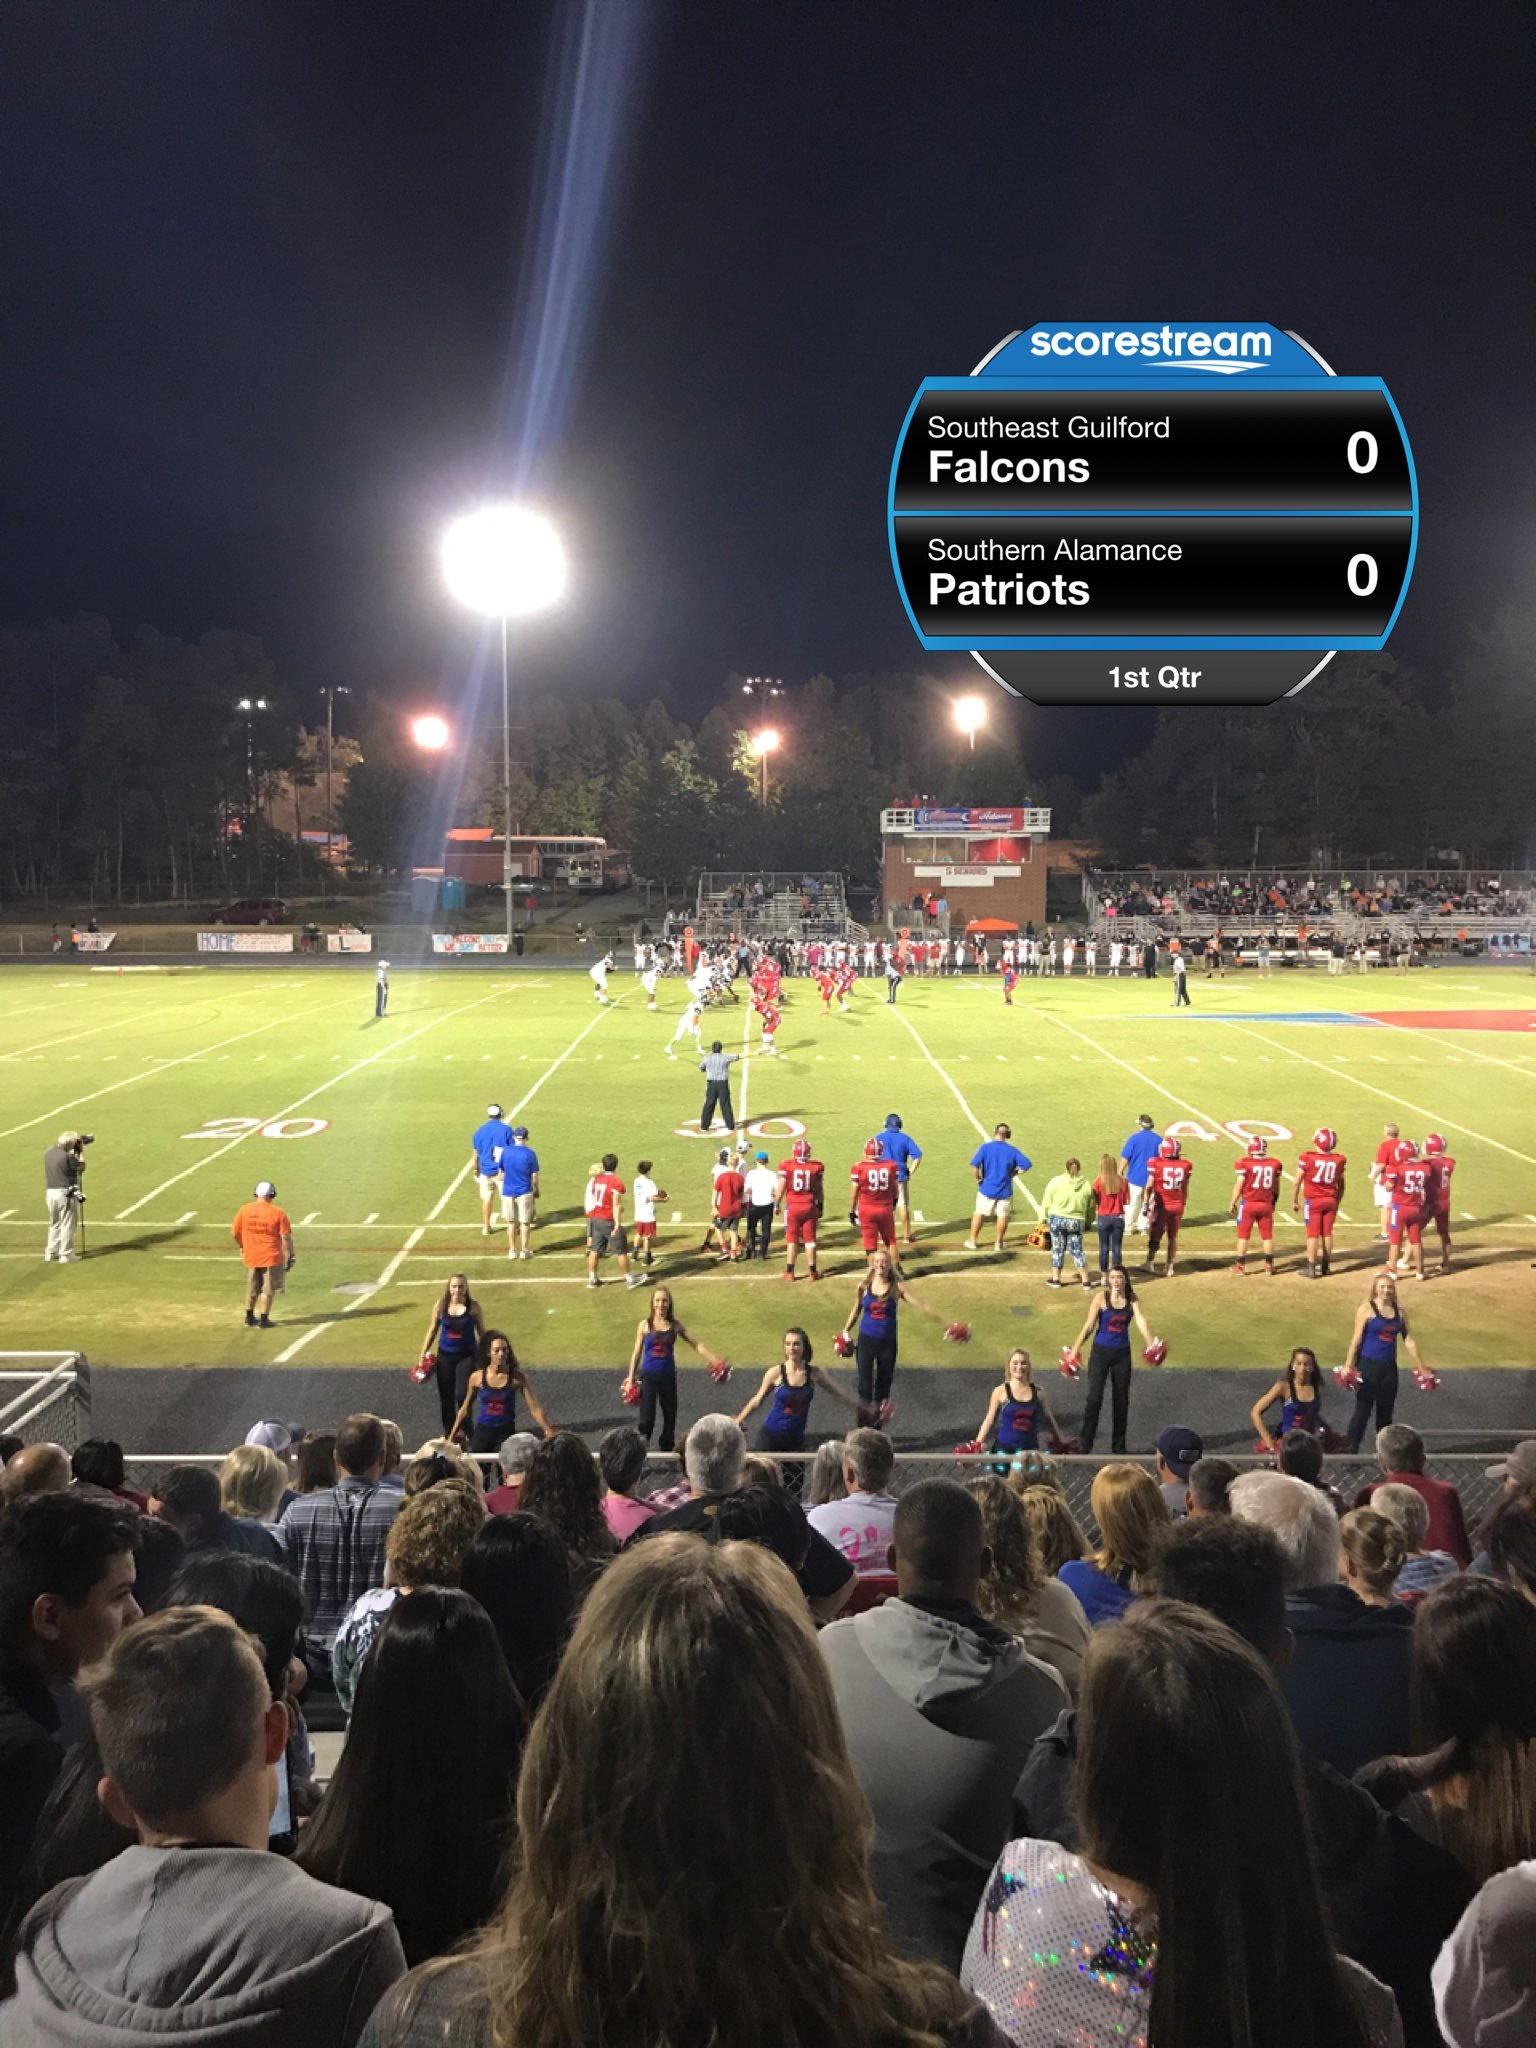 The Southeast Guilford Falcons Defeat The Southern Alamance Patriots